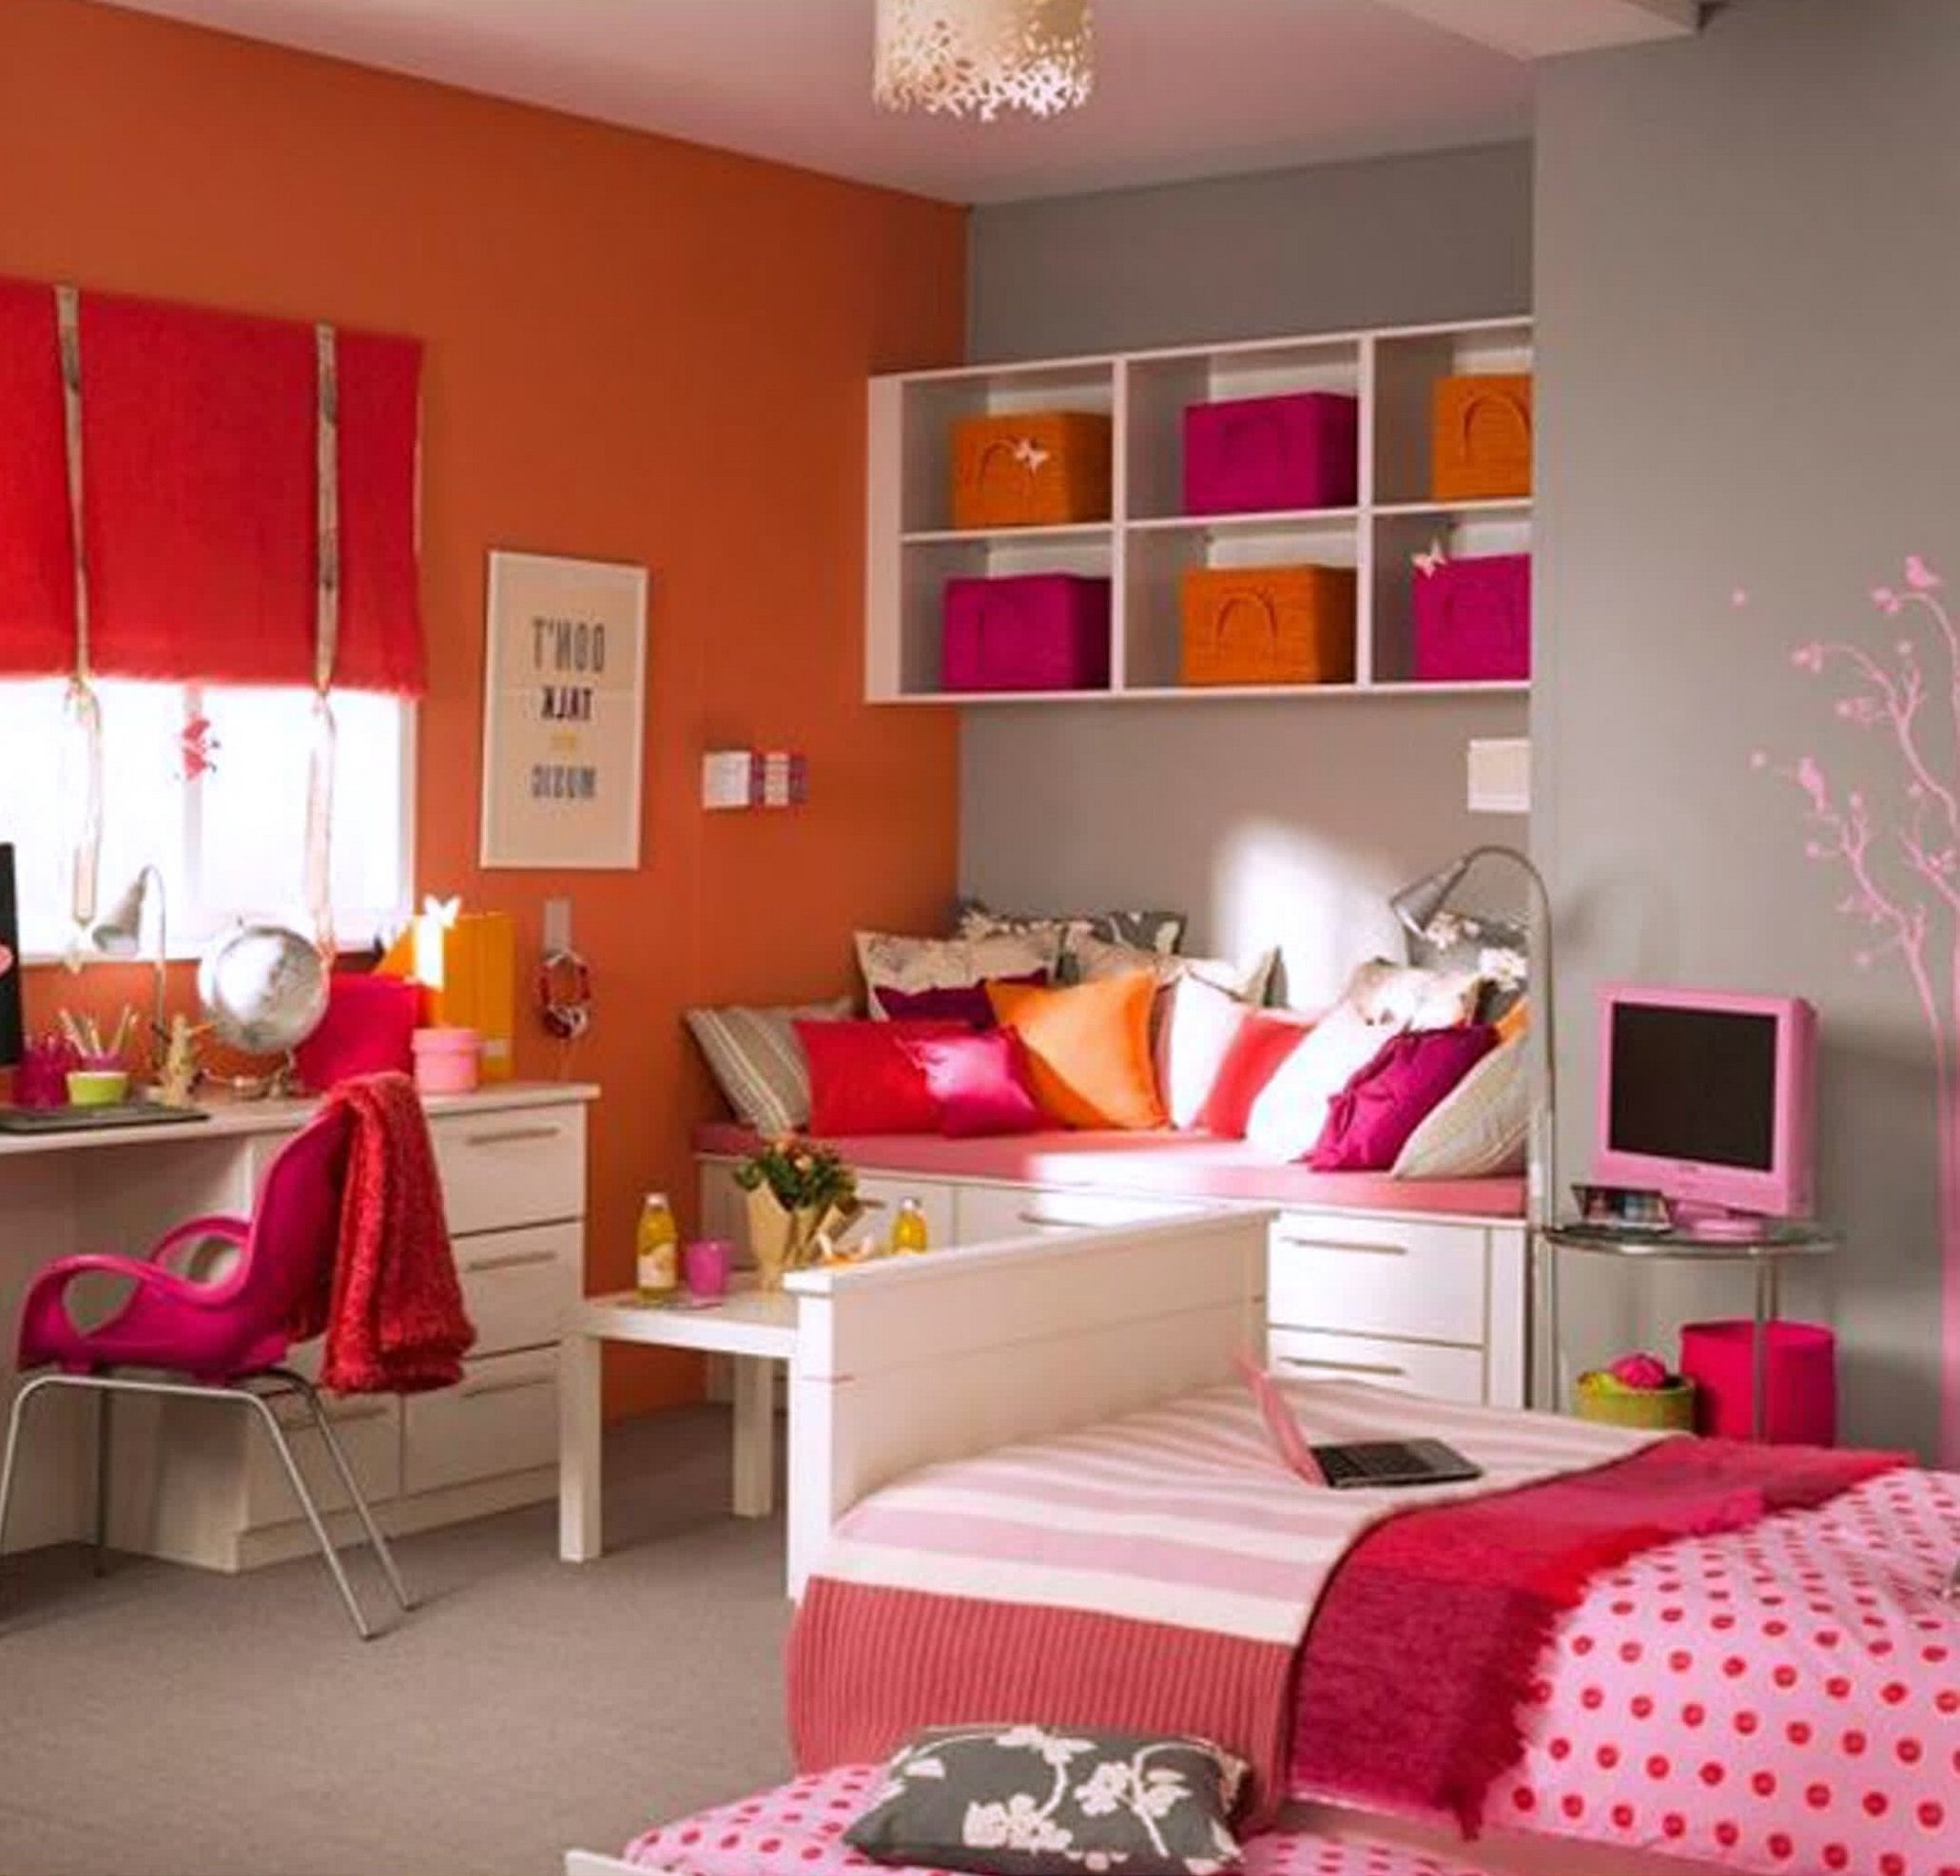 10 Pretty Teenage Bedroom Ideas For Small Rooms teenage girl bedroom ideas for small rooms idolza 2020